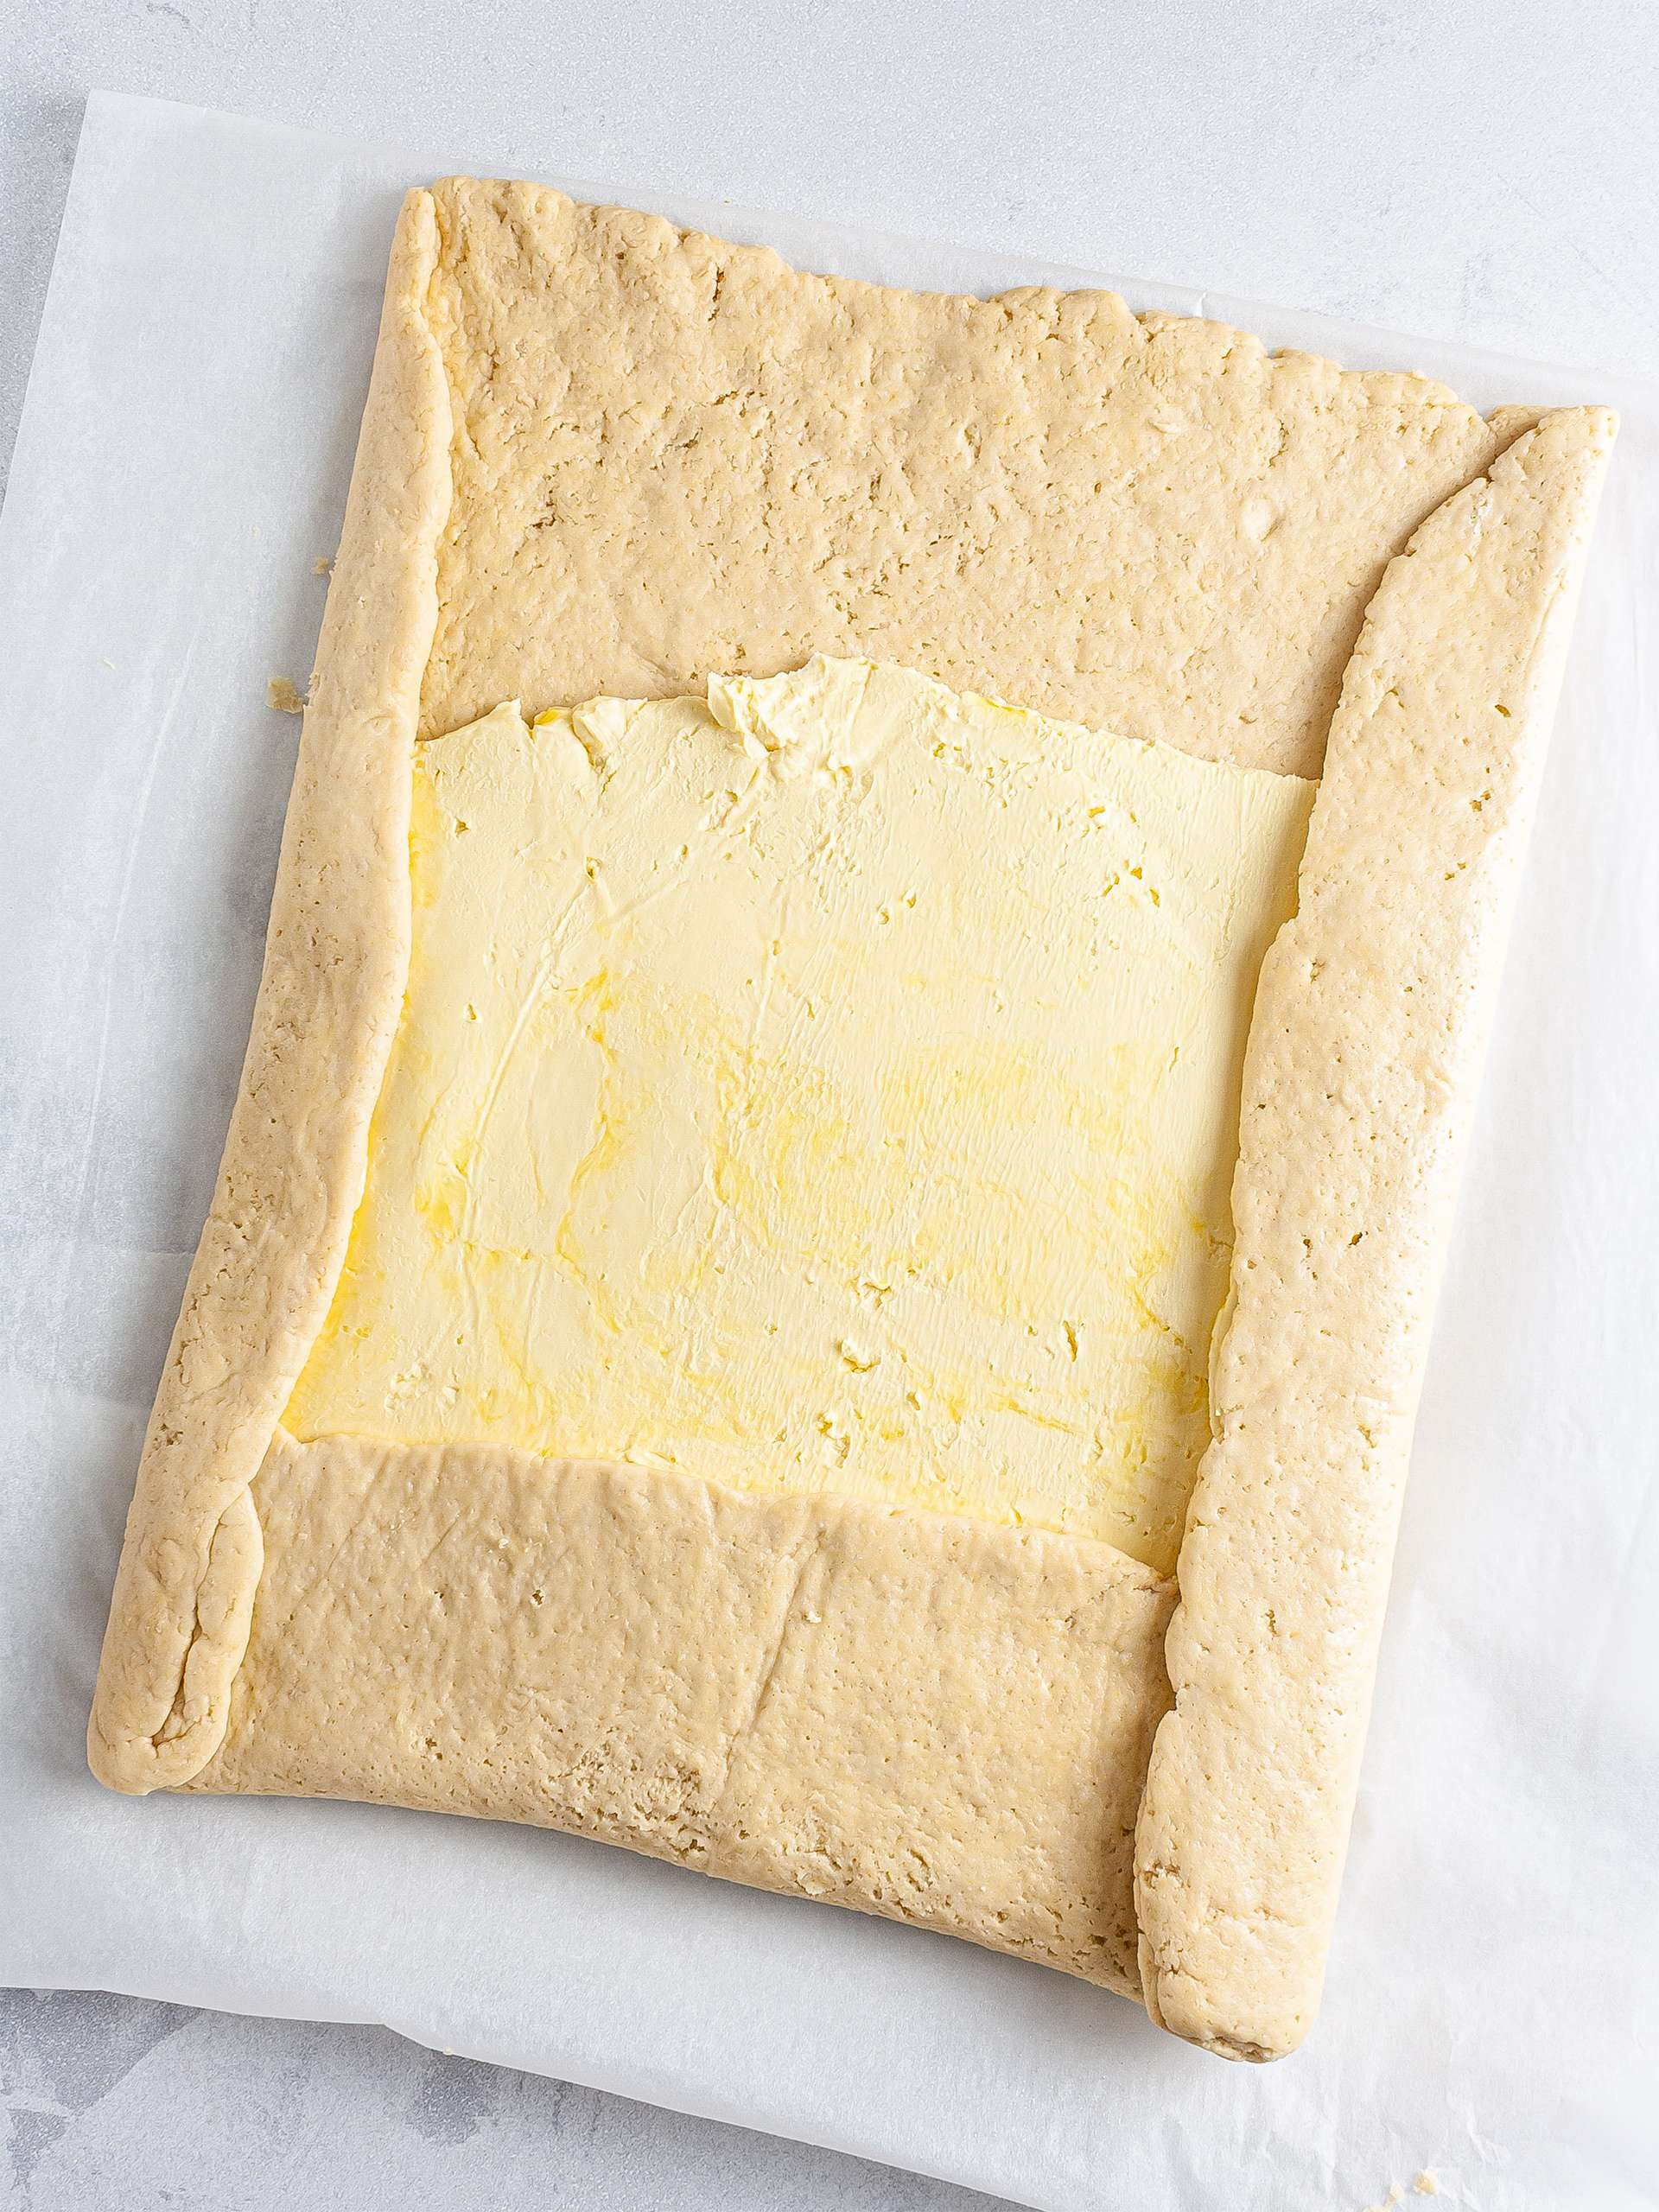 Dough folded with vegan butter